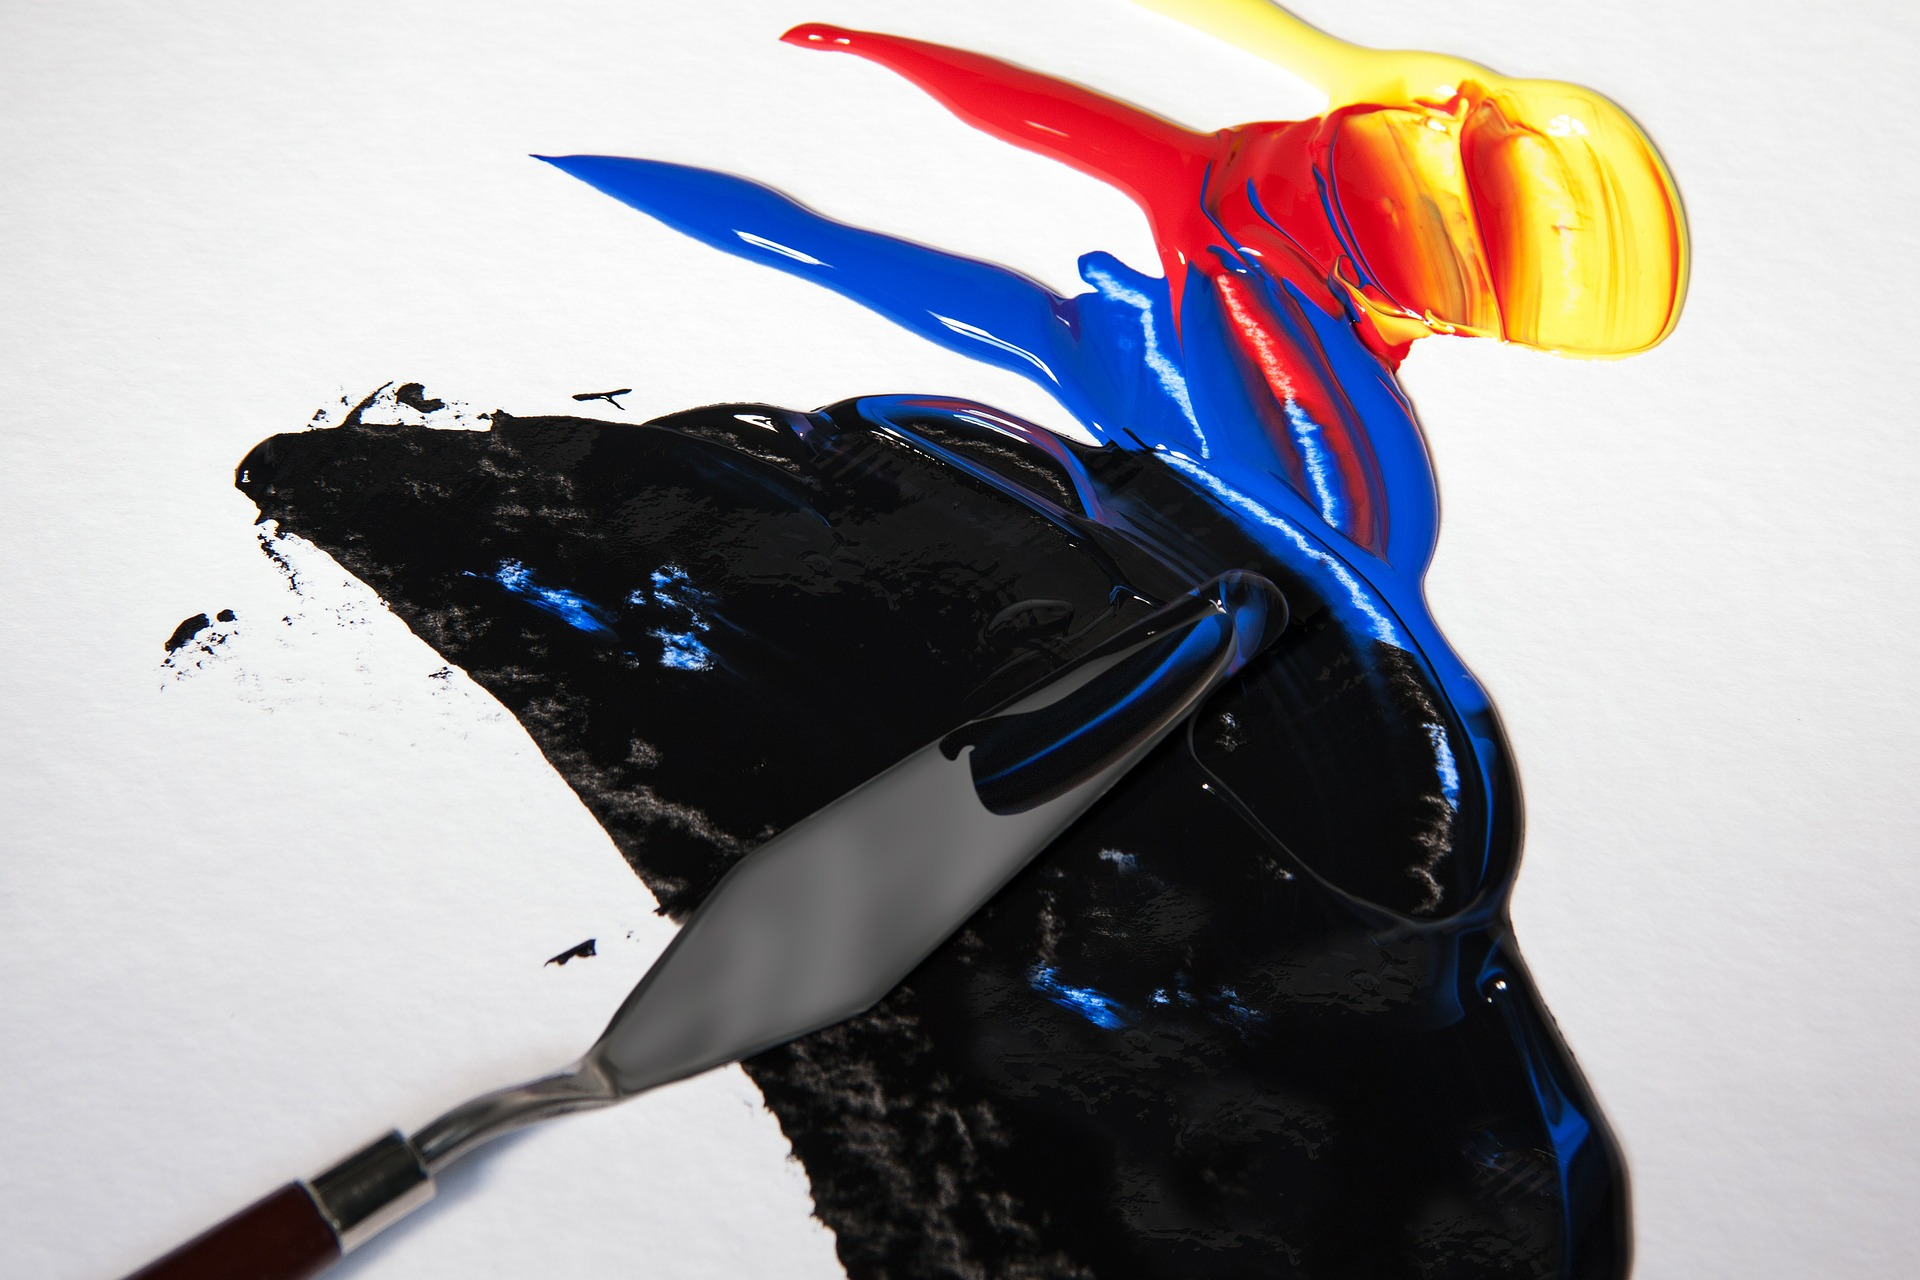 Decorative image of different colors of acrylic paint being blended together.